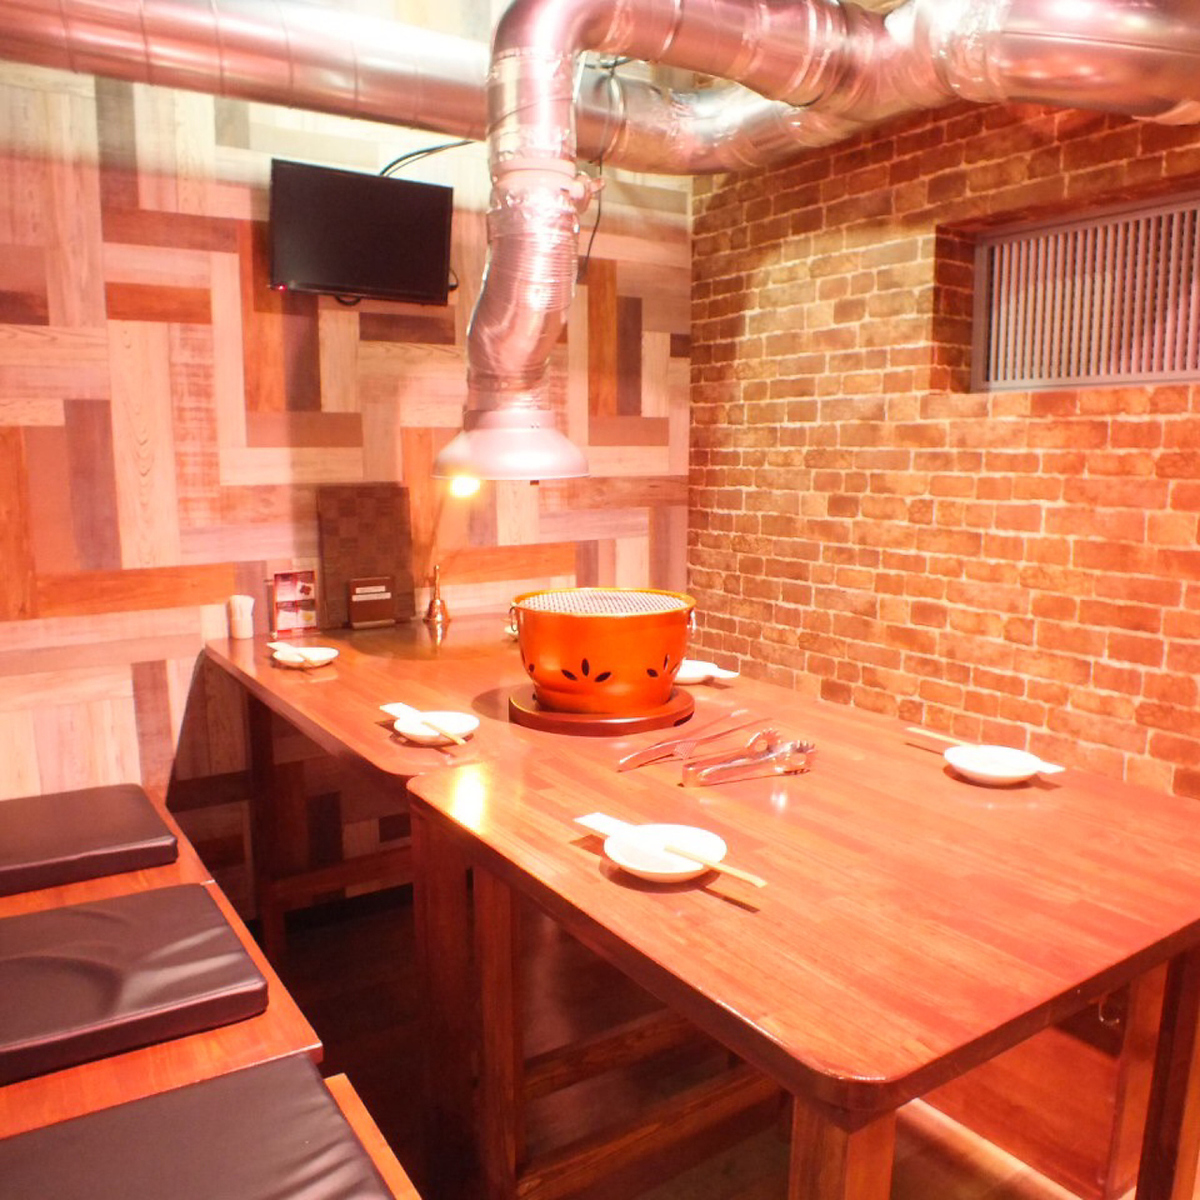 Dinner with family and friends ♪ delicious Kuroge Wagyu beef yakiniku ♪ In the settled store you have visited customers of a wide range of generations! 【Table seat 6】